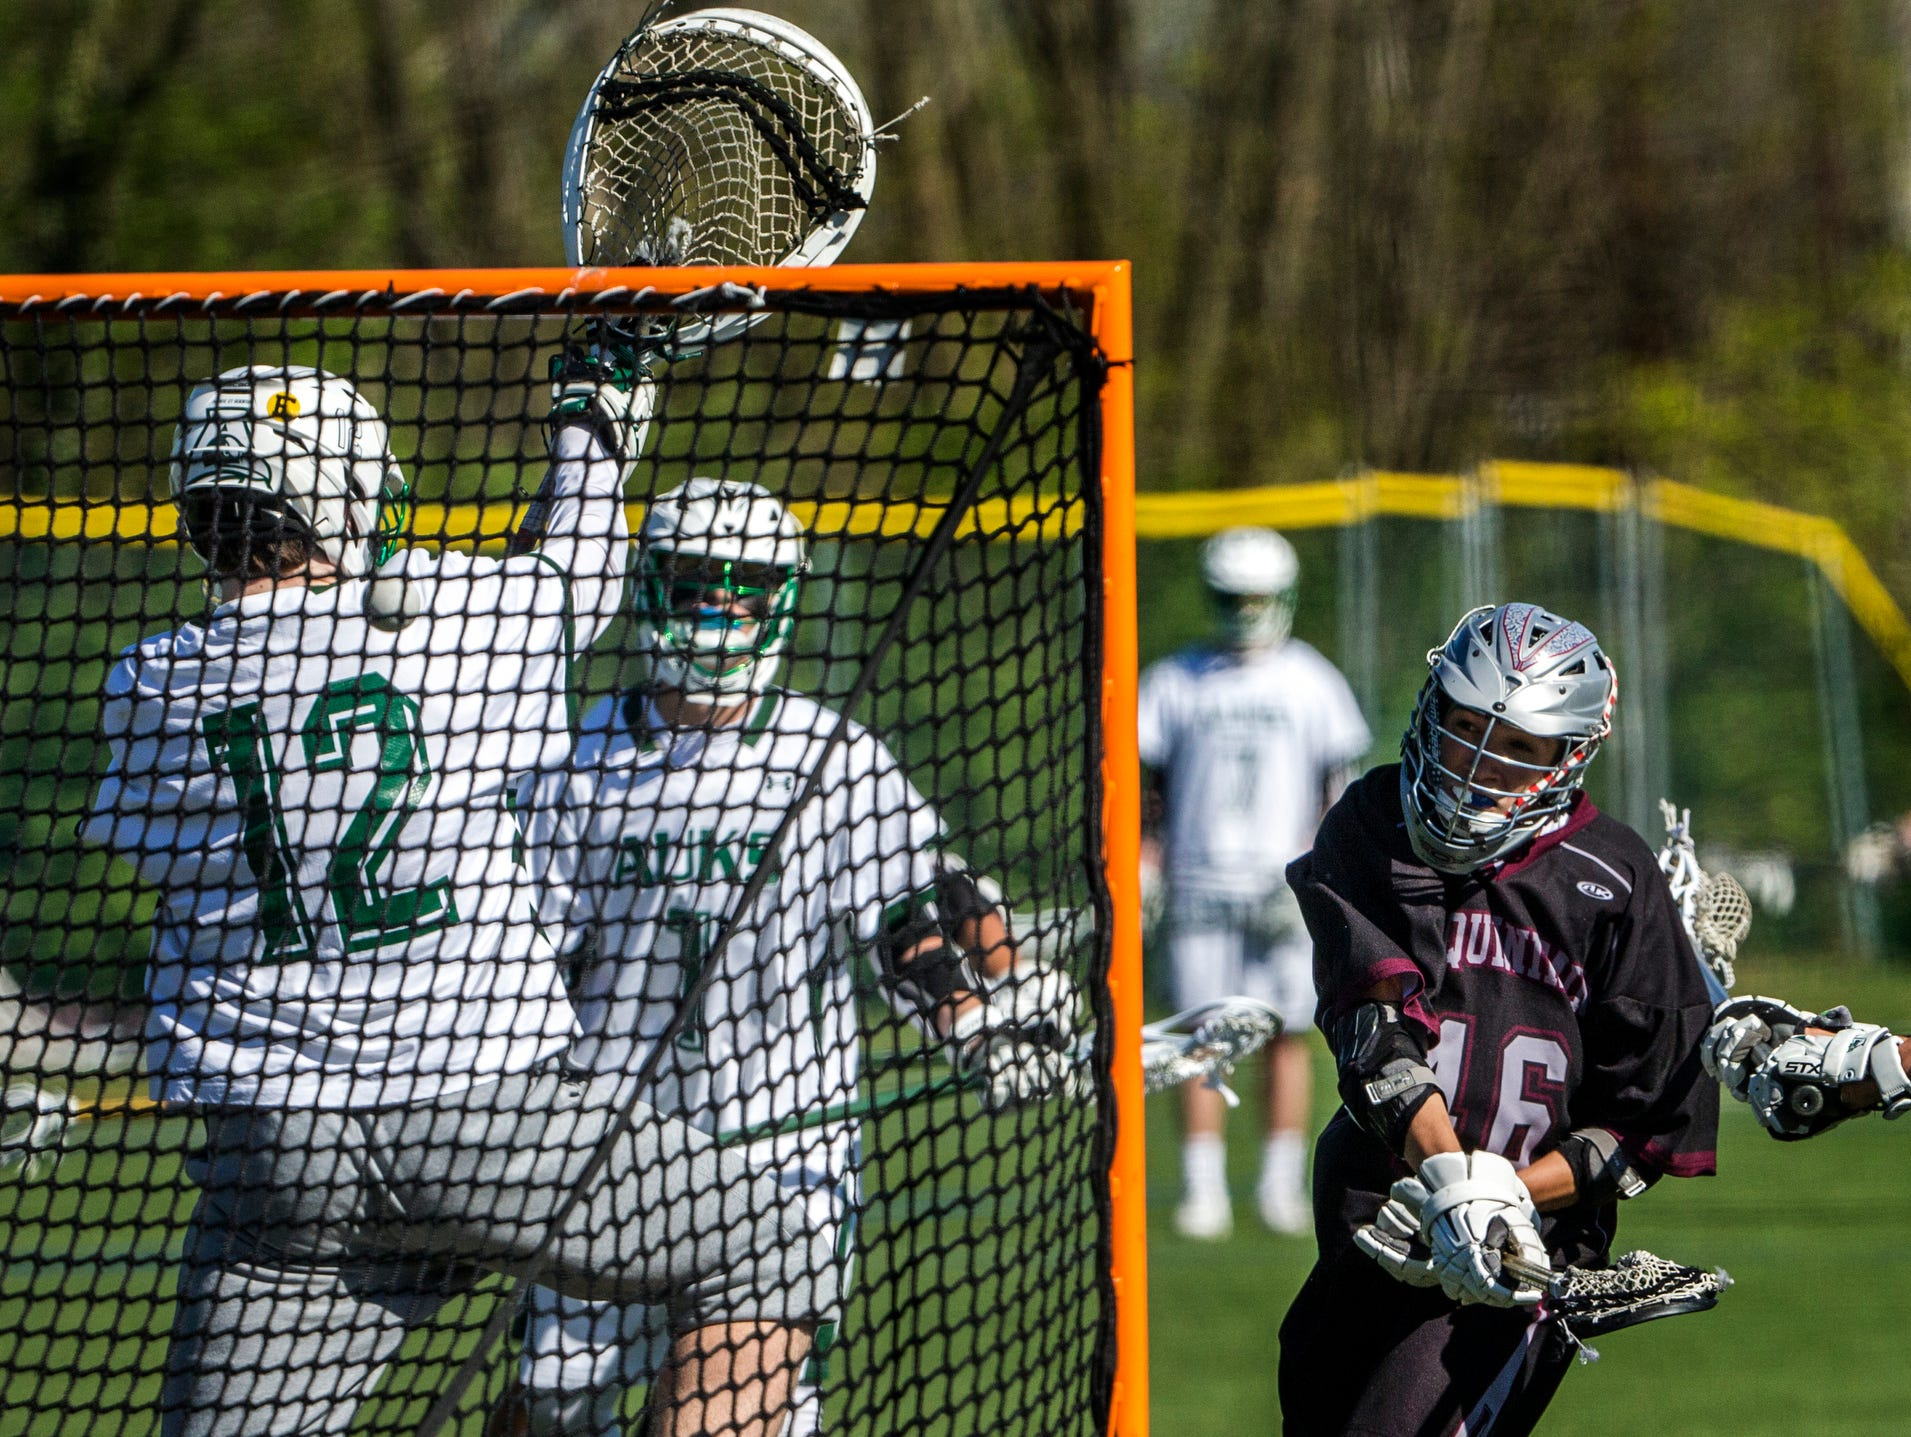 Appoquinimink's John Maloy (right) puts a shot past Archmere goalie Jake Mottola (left) in the first quarter of Appoquinimink's 13-12 win over Archmere at Archmere Academy on Wednesday afternoon.